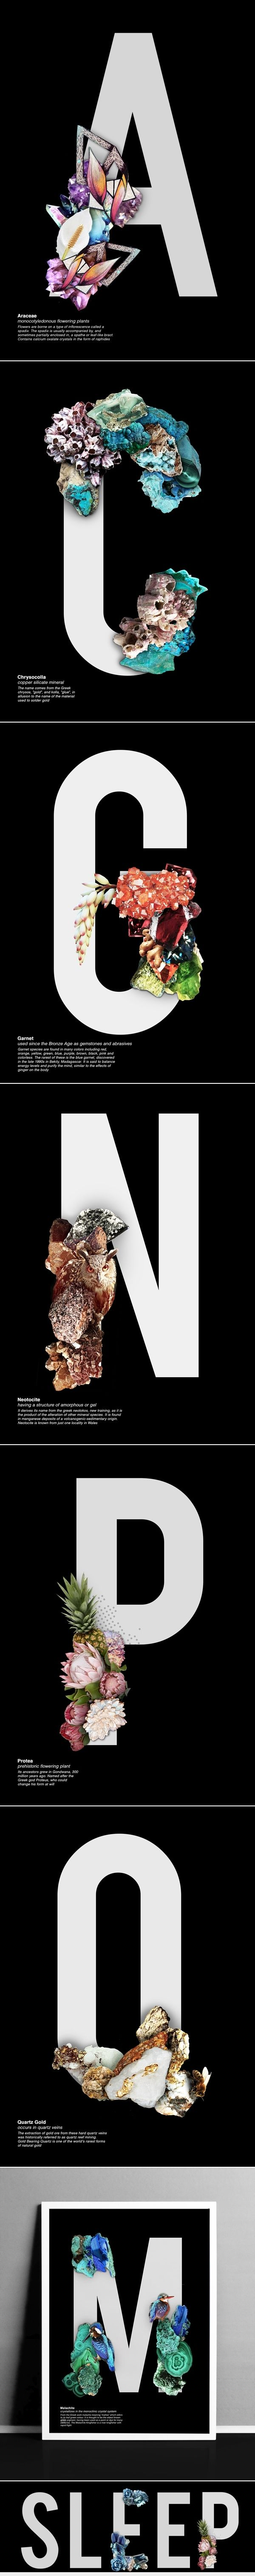 Natural History Type Project A type series created by Sleep Projects. Inspired by Bebas typeface and designed by Ryoichi Tsenekawa. Each letter is designed to a mineral that begins with that letter